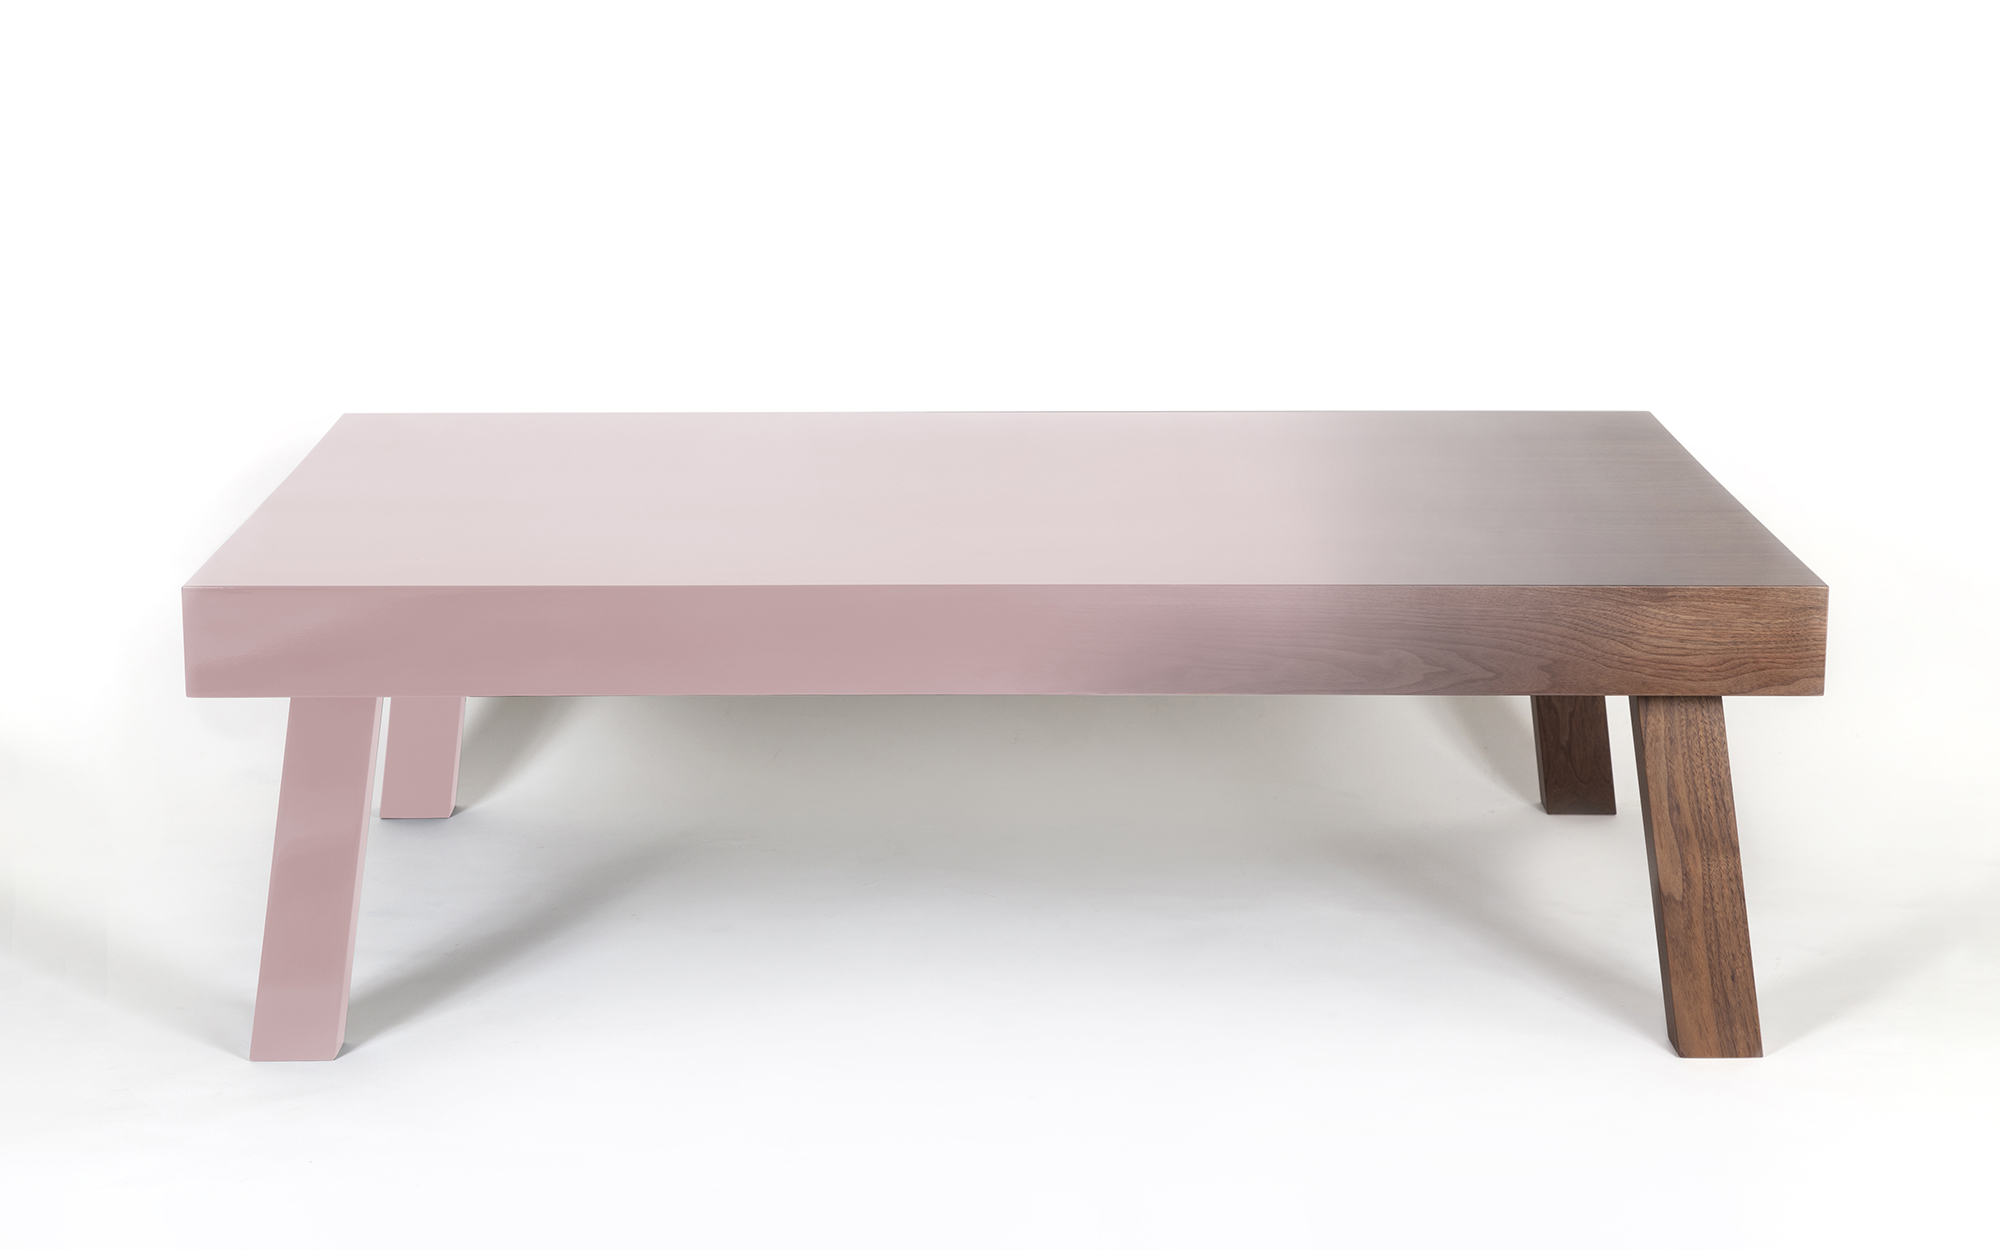 Hella Jongerius Niebla Coffee Table